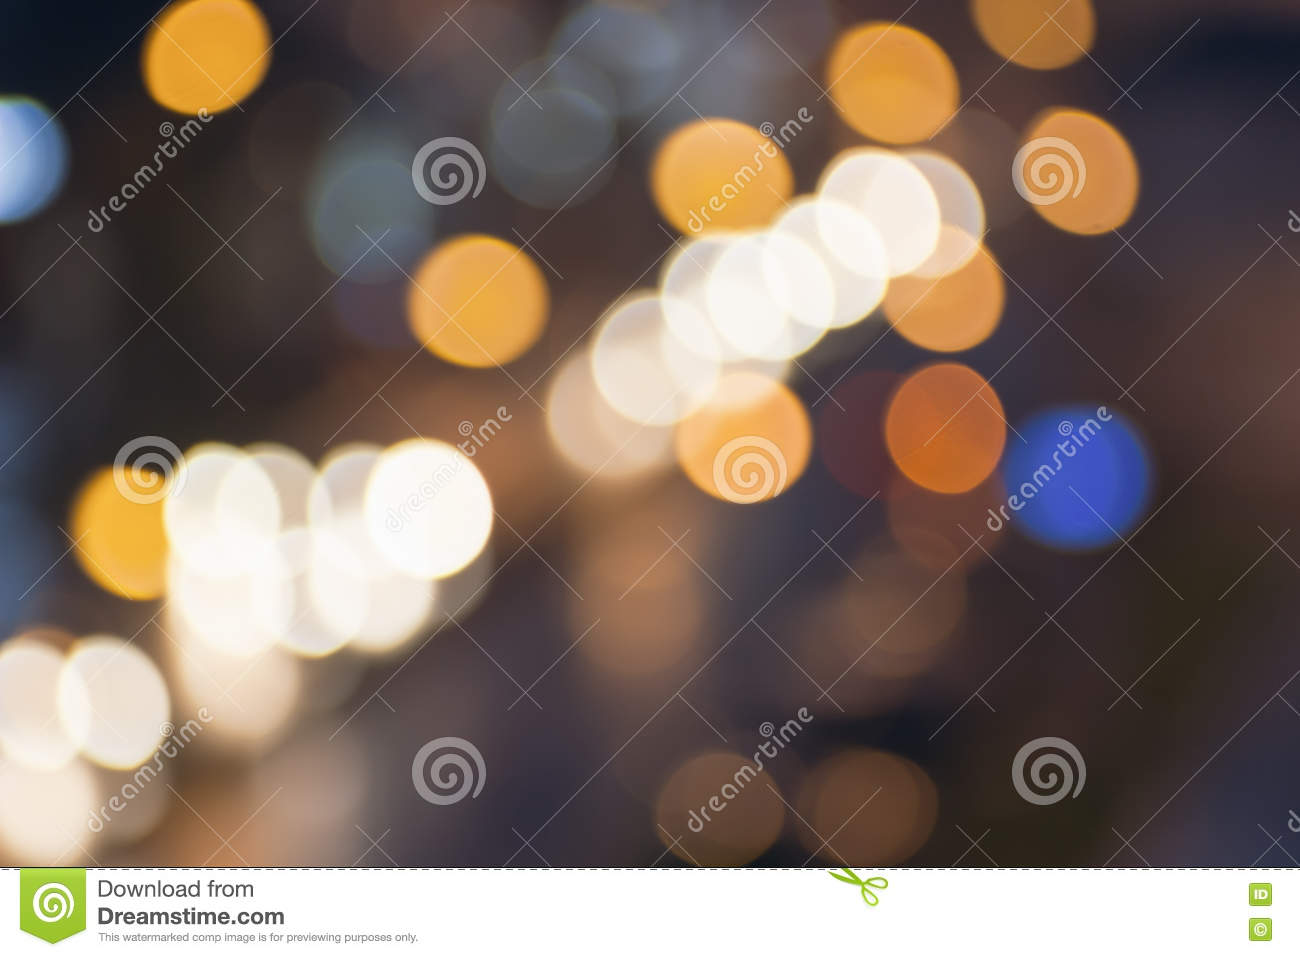 Abstract blurred night city lights. Blur backgrounds concept. Blur of cityscape in Blue hour. Blur wallpaper concept. Blurry nigh